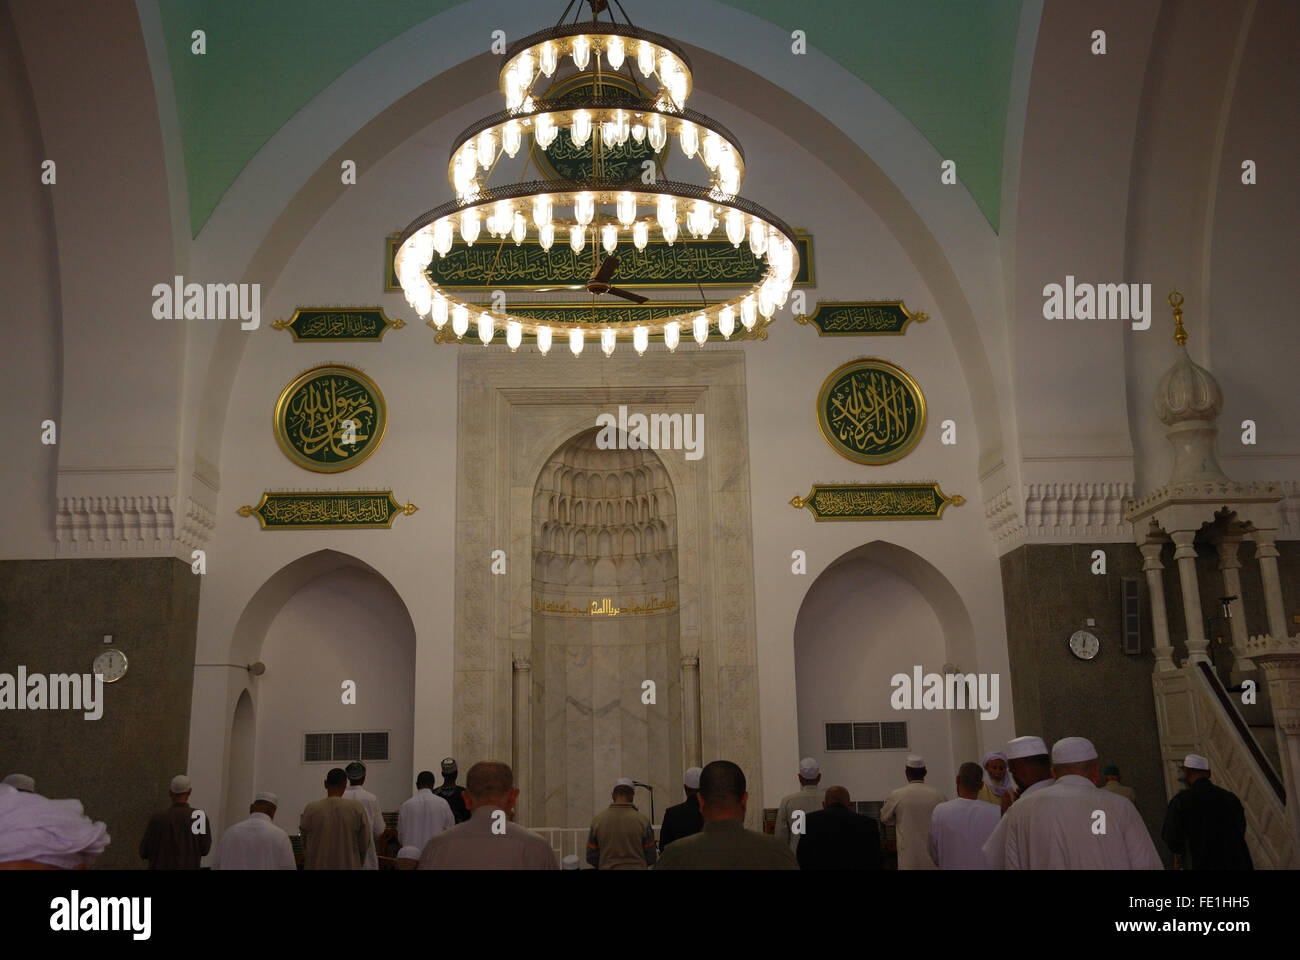 Worshipers in front of the Mehrab in Masjid Quba, the very first Mosque that was built, Medina, Saudi Arabia - Stock Image